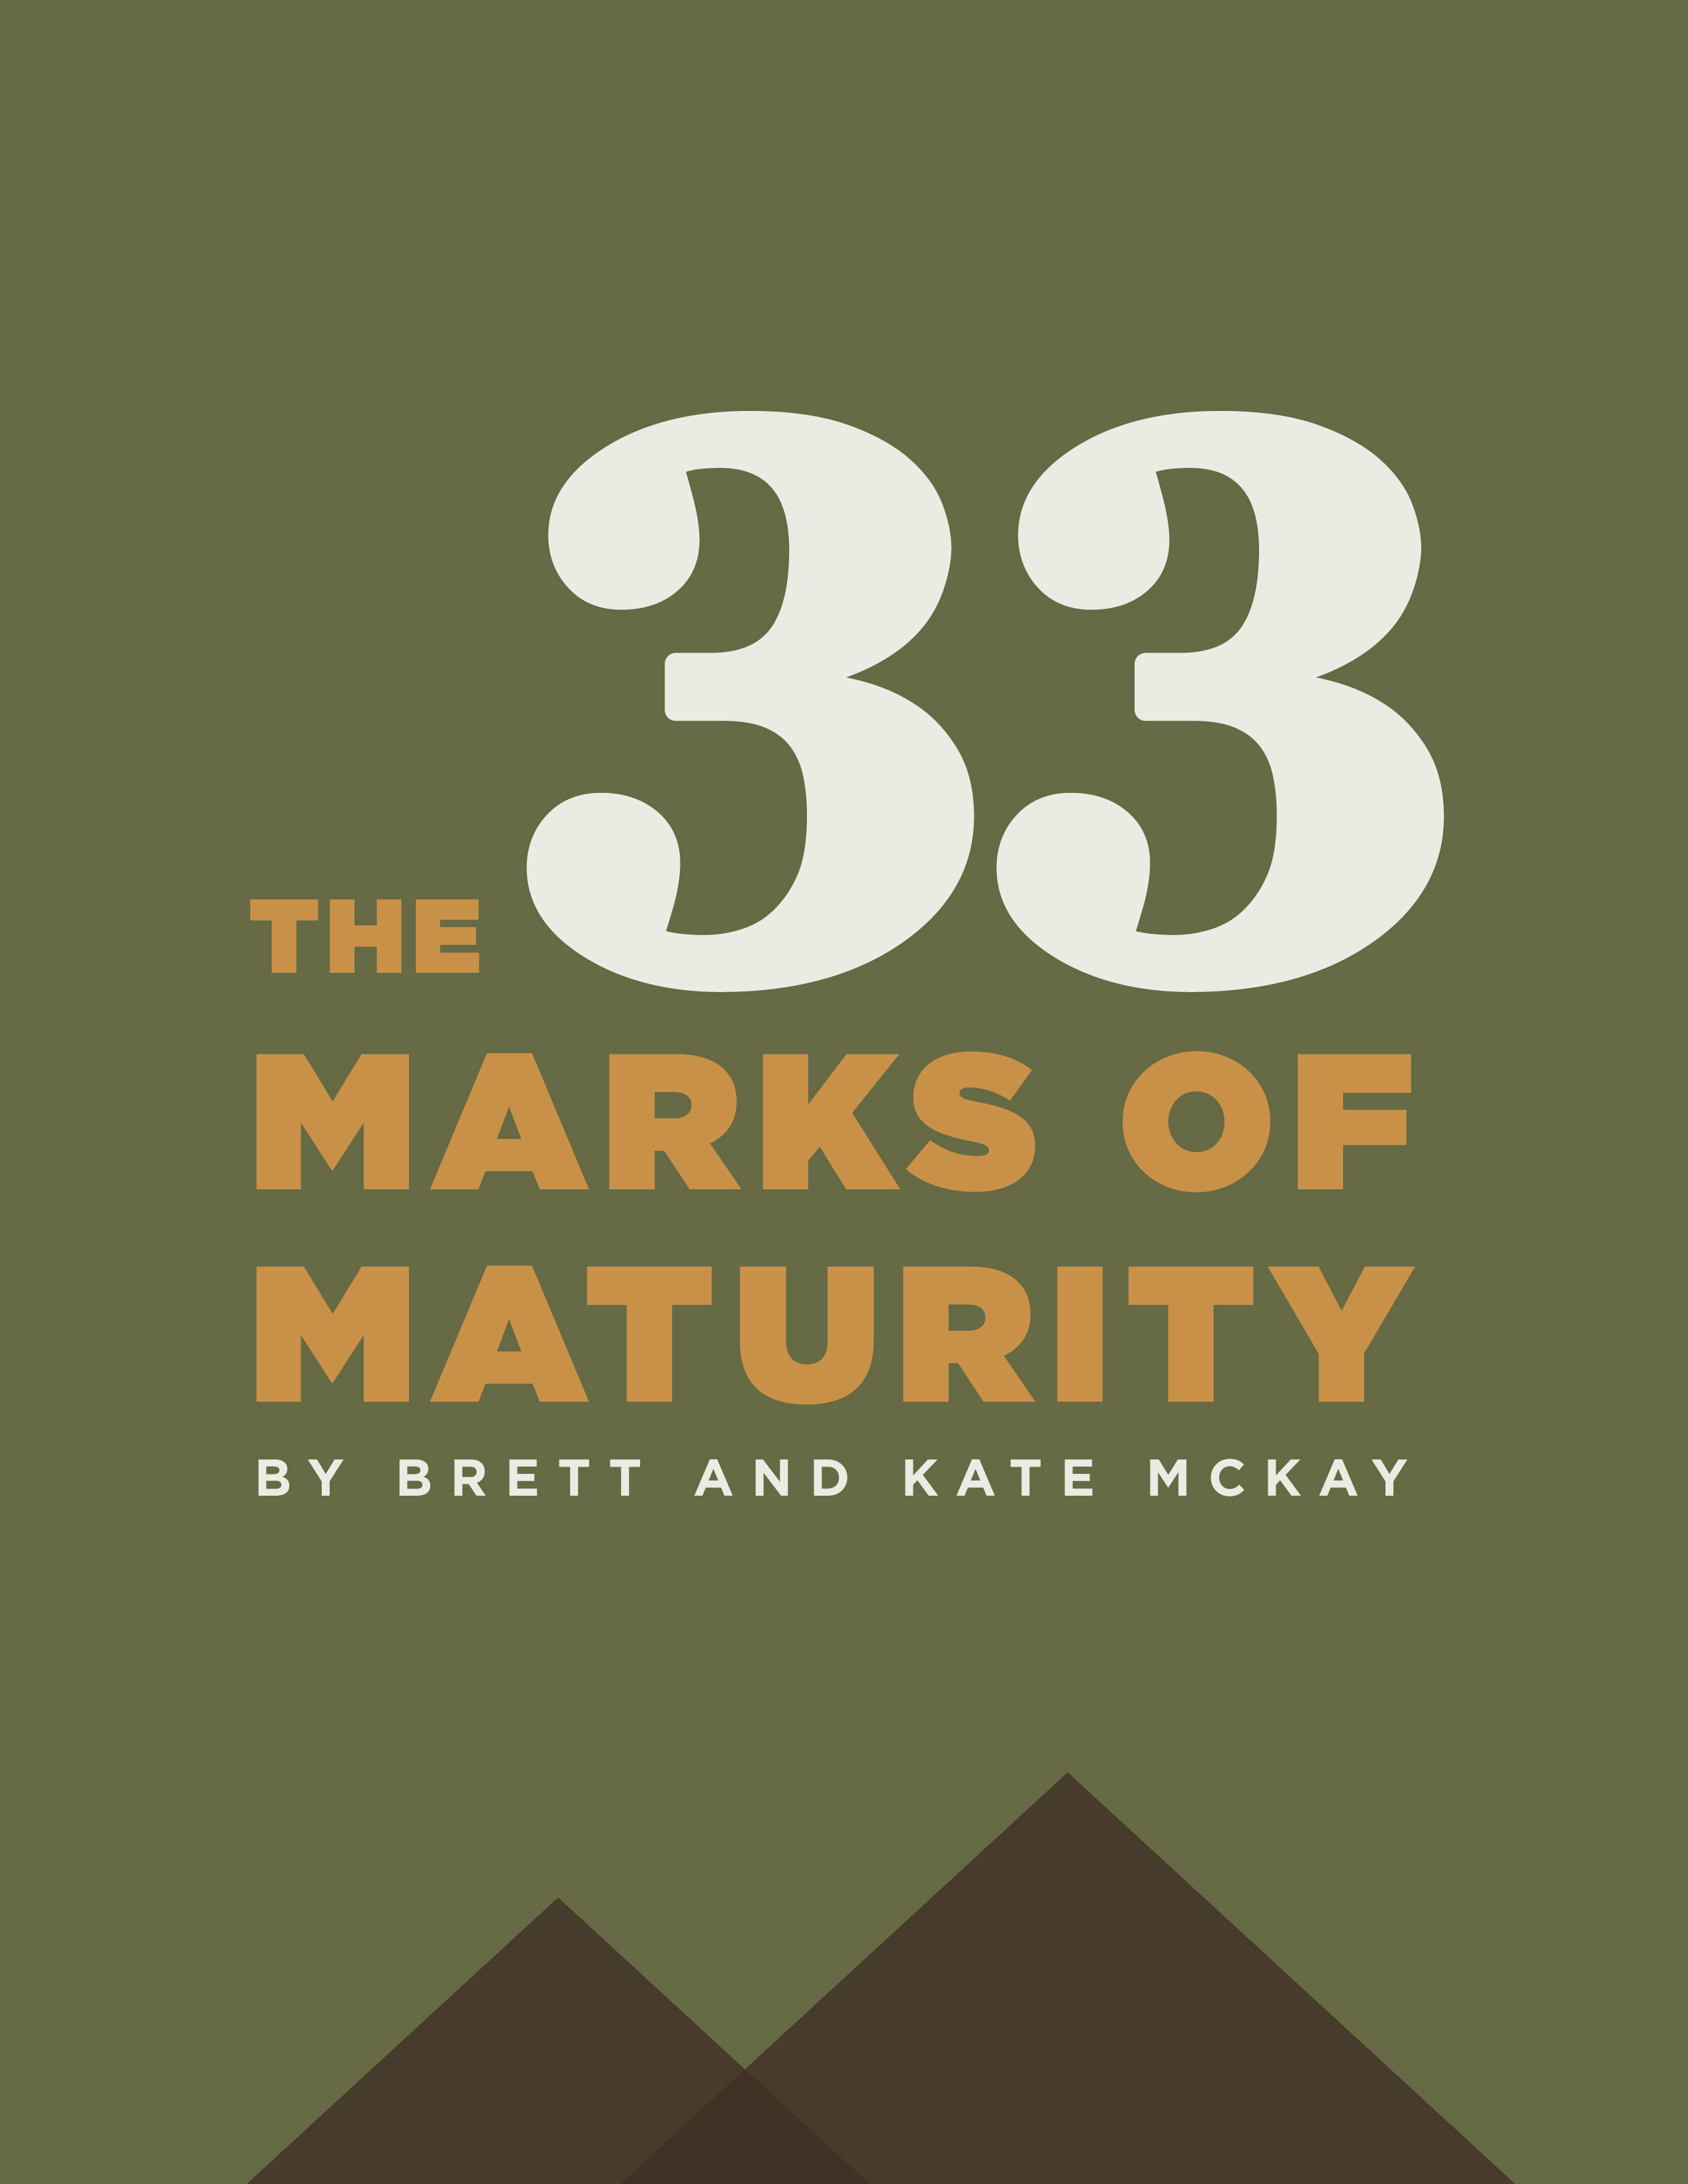 Book cover of The 33 Marks of Maturity by Brett and Kate Mckay.